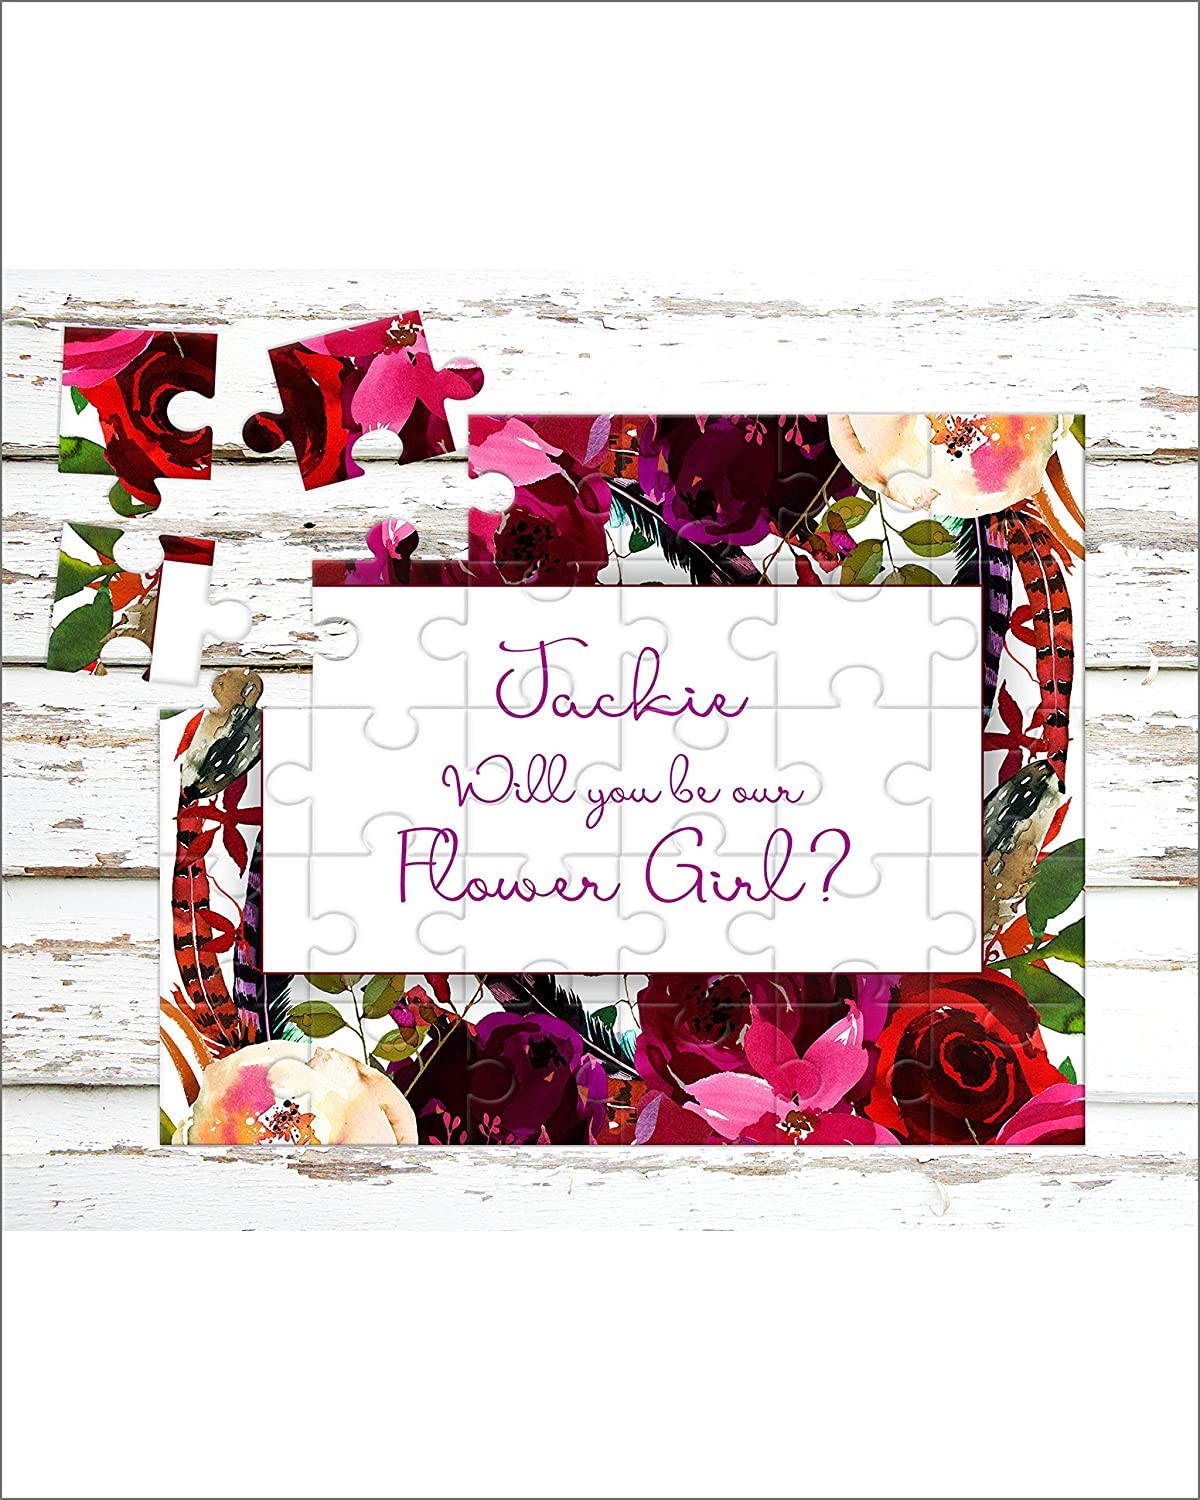 Personalized Flower Girl Puzzle - Puzzle Proposal - Asking Flower Girl - Wedding Announcement - P0271